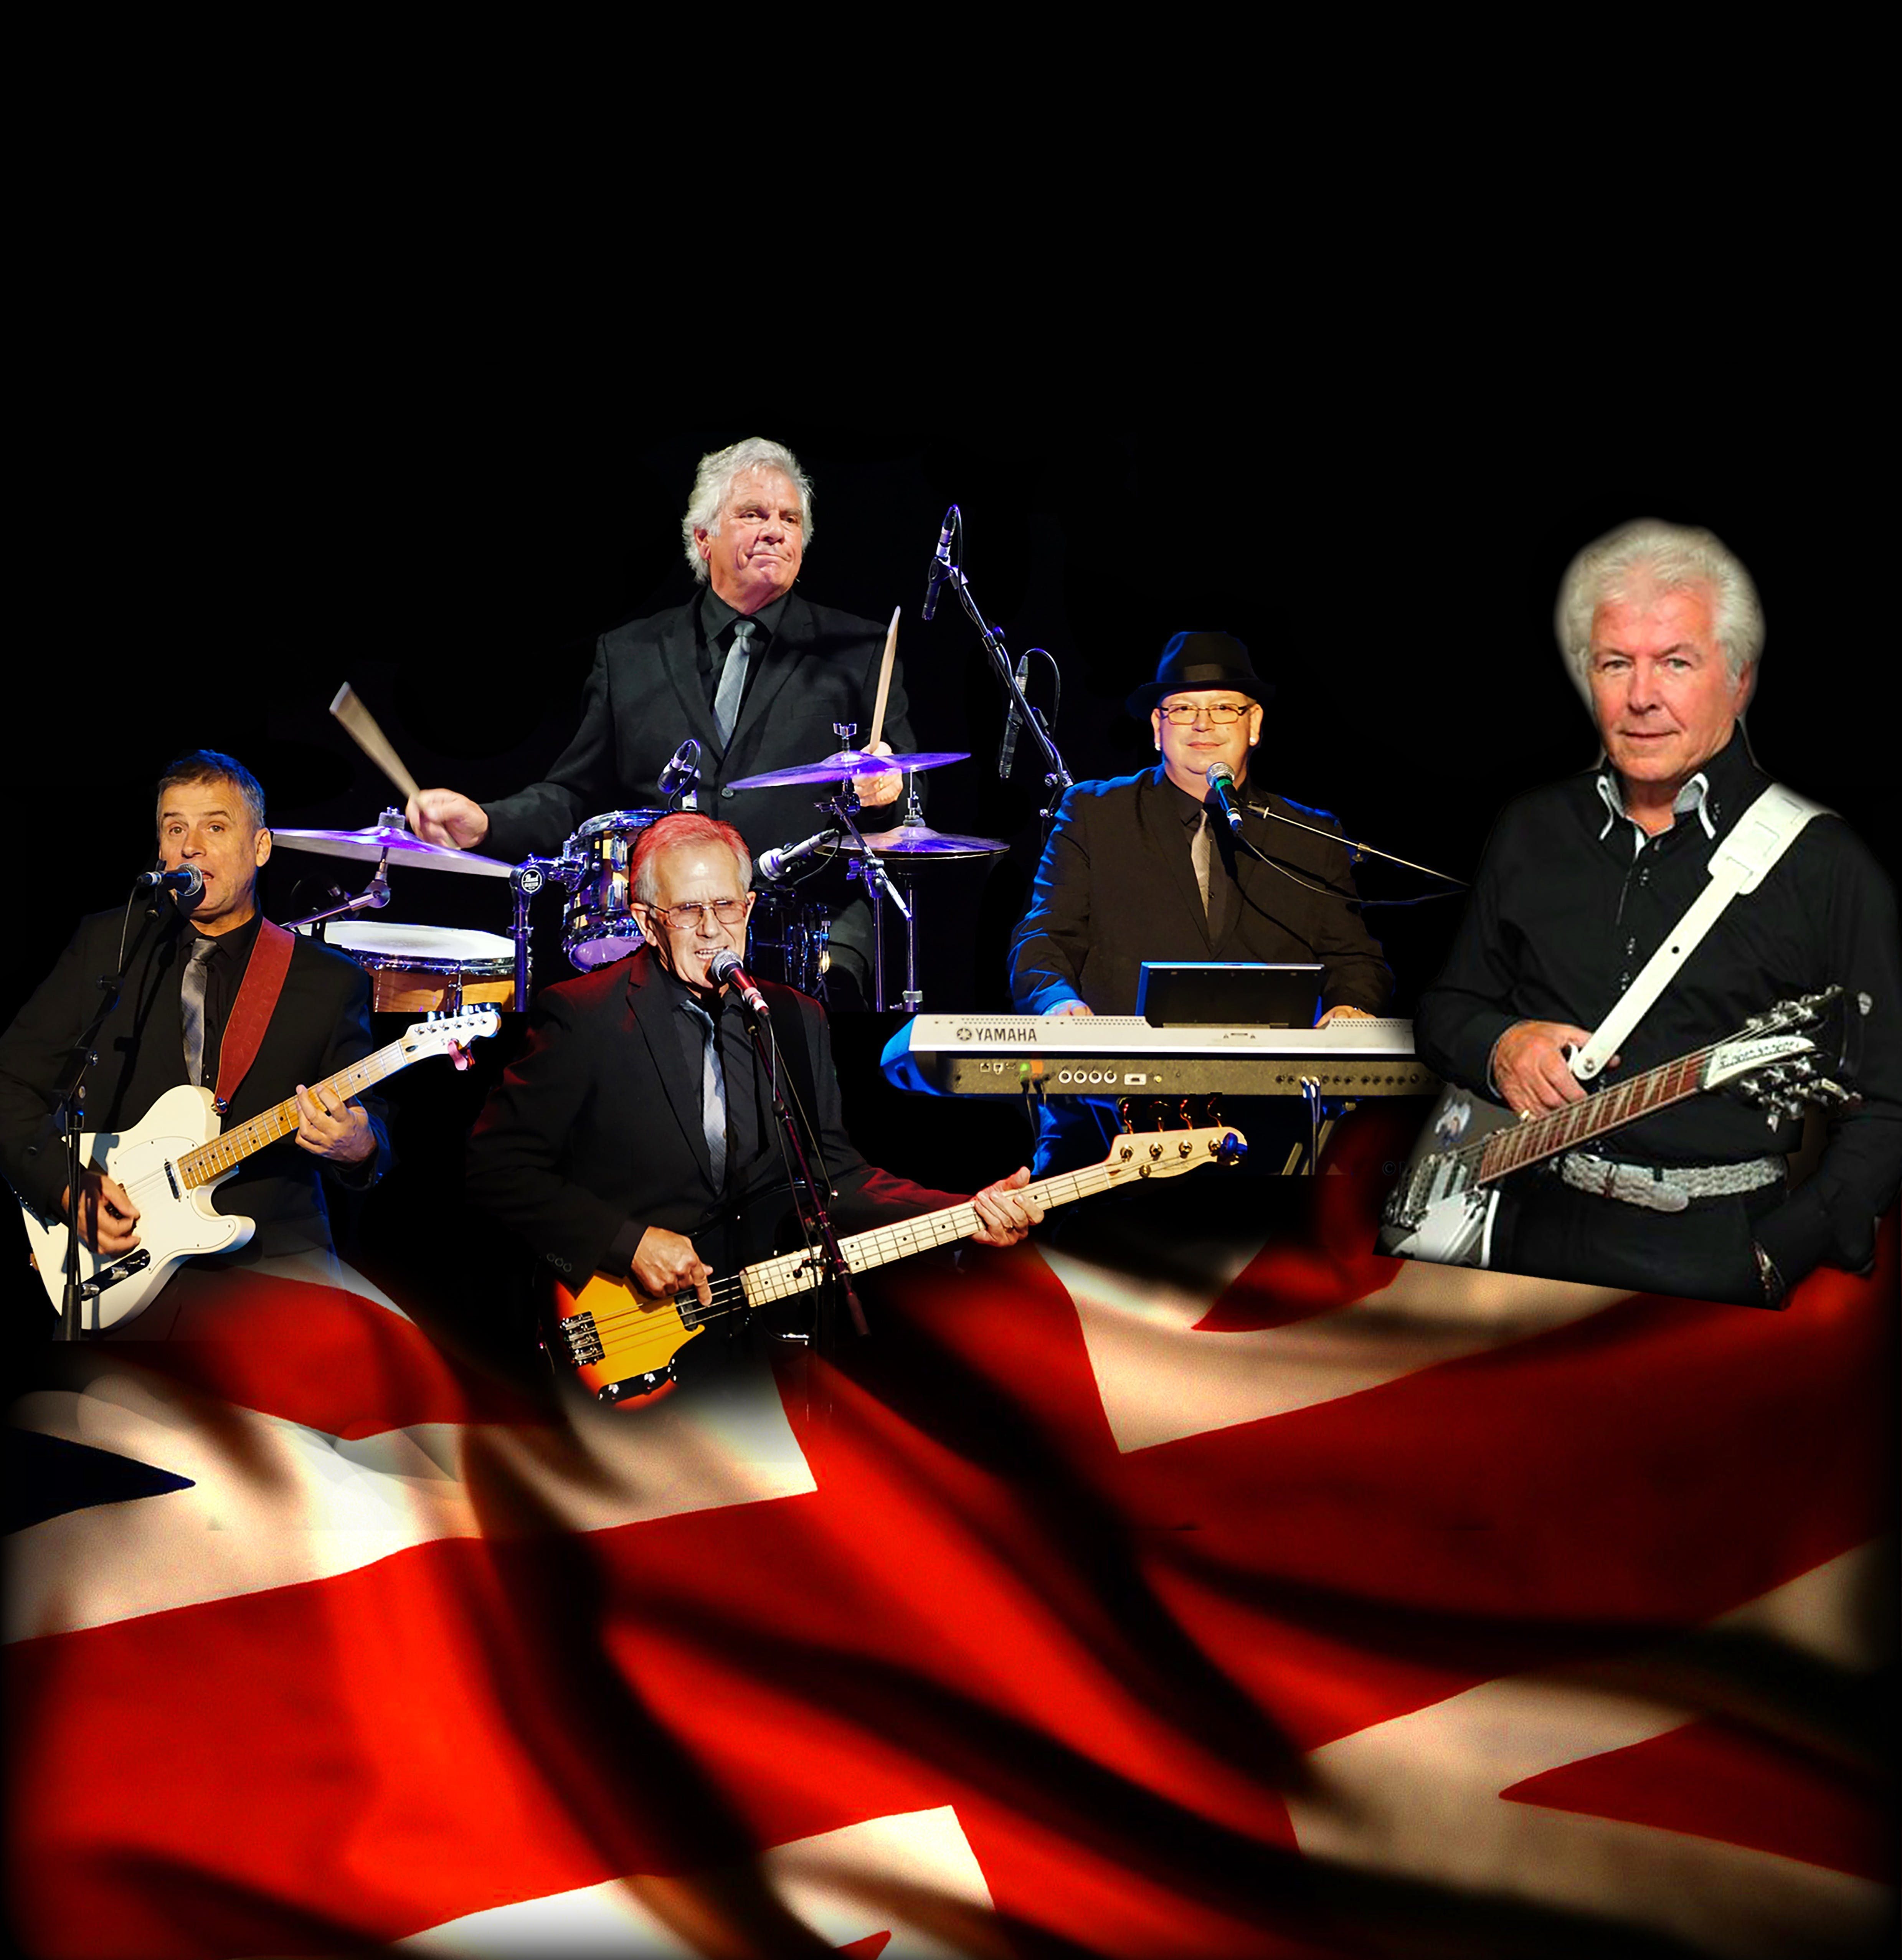 Herman's Hermits with Special Guest Mike Pender - The Six O'Clock Hop - Lightning Ridge Tourism